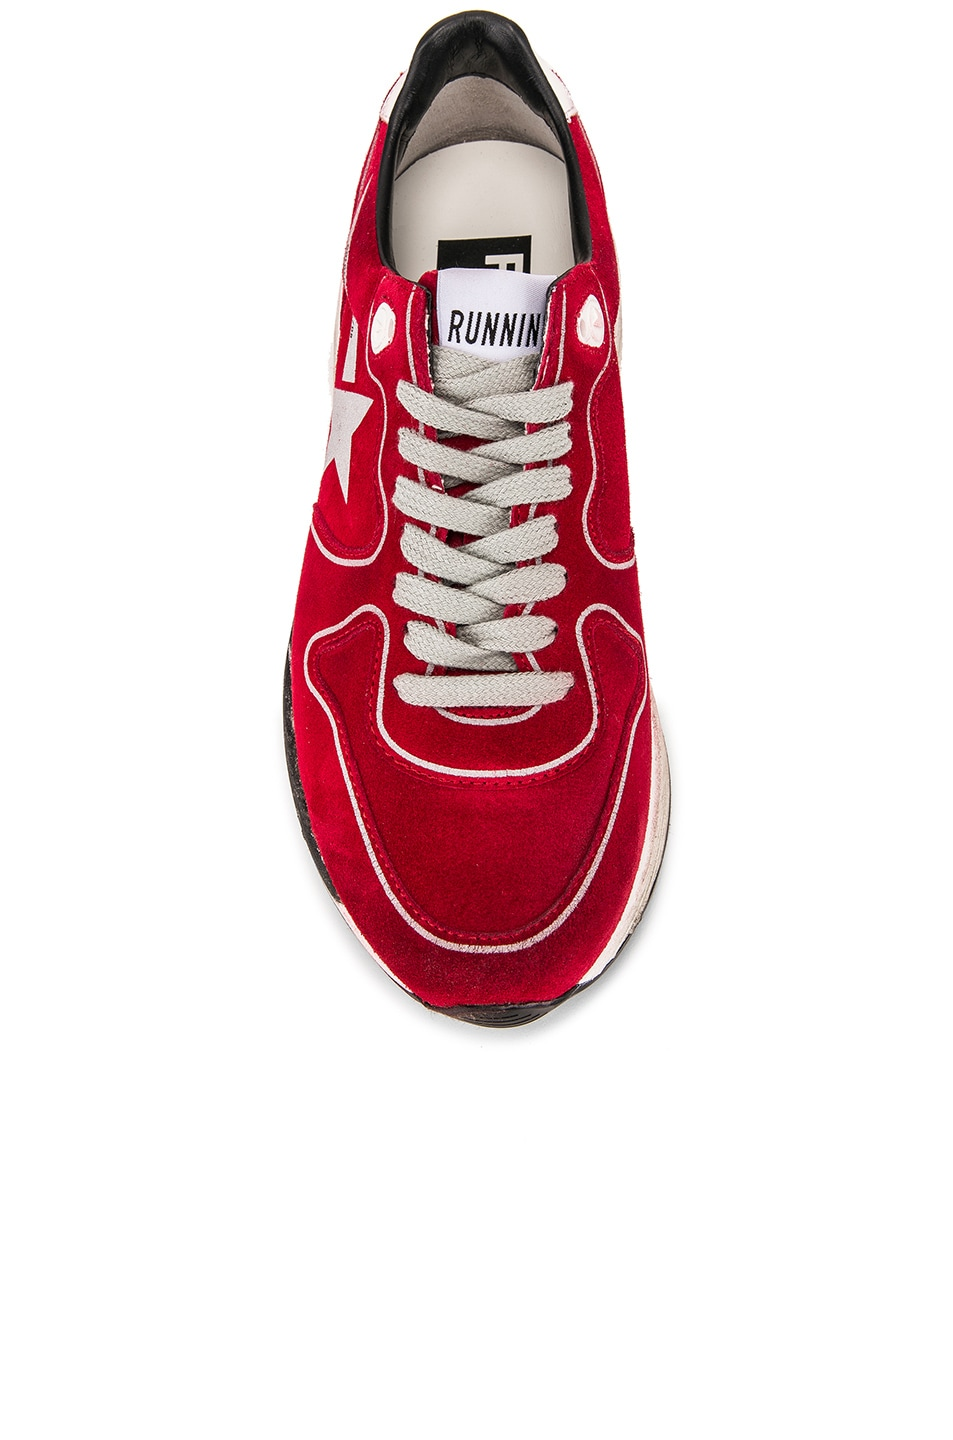 Image 4 of Golden Goose Running Sole Sneakers in Red Suede & Silver Star